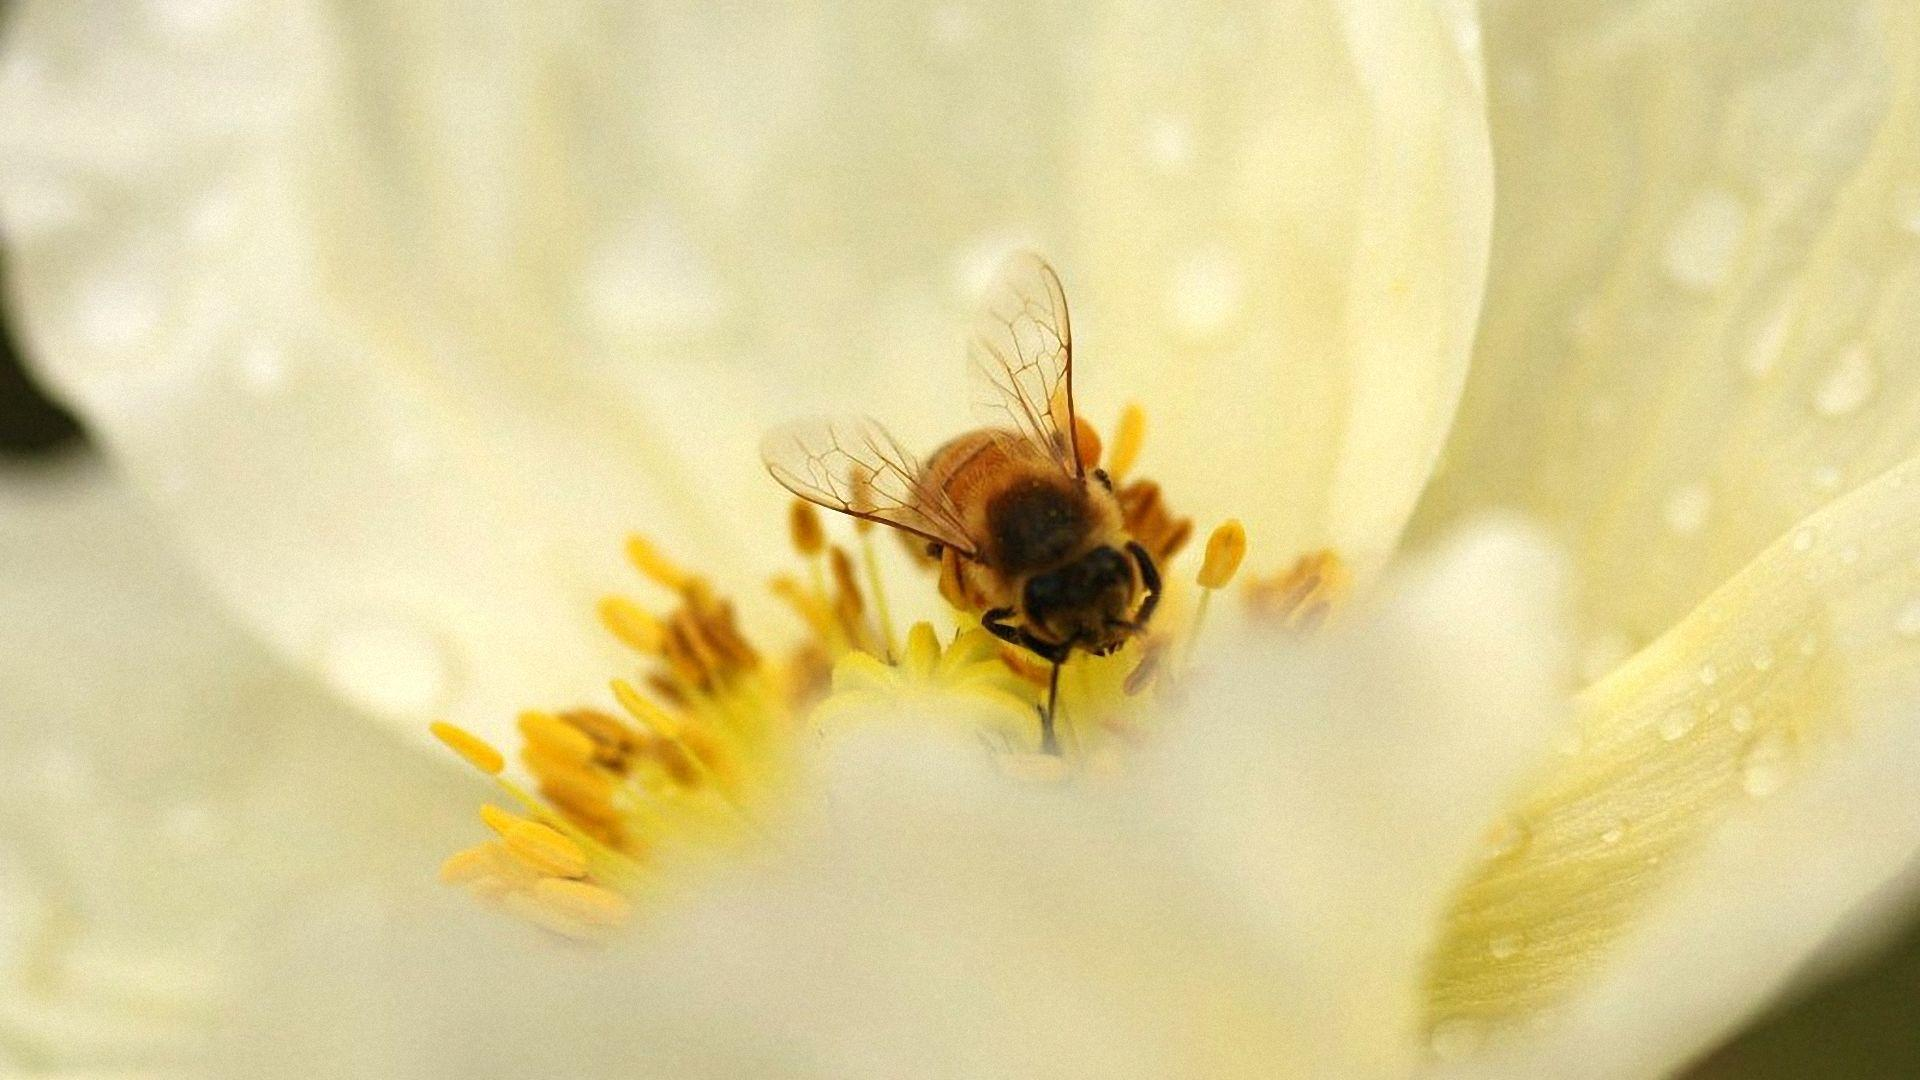 beehive wallpapers - photo #32